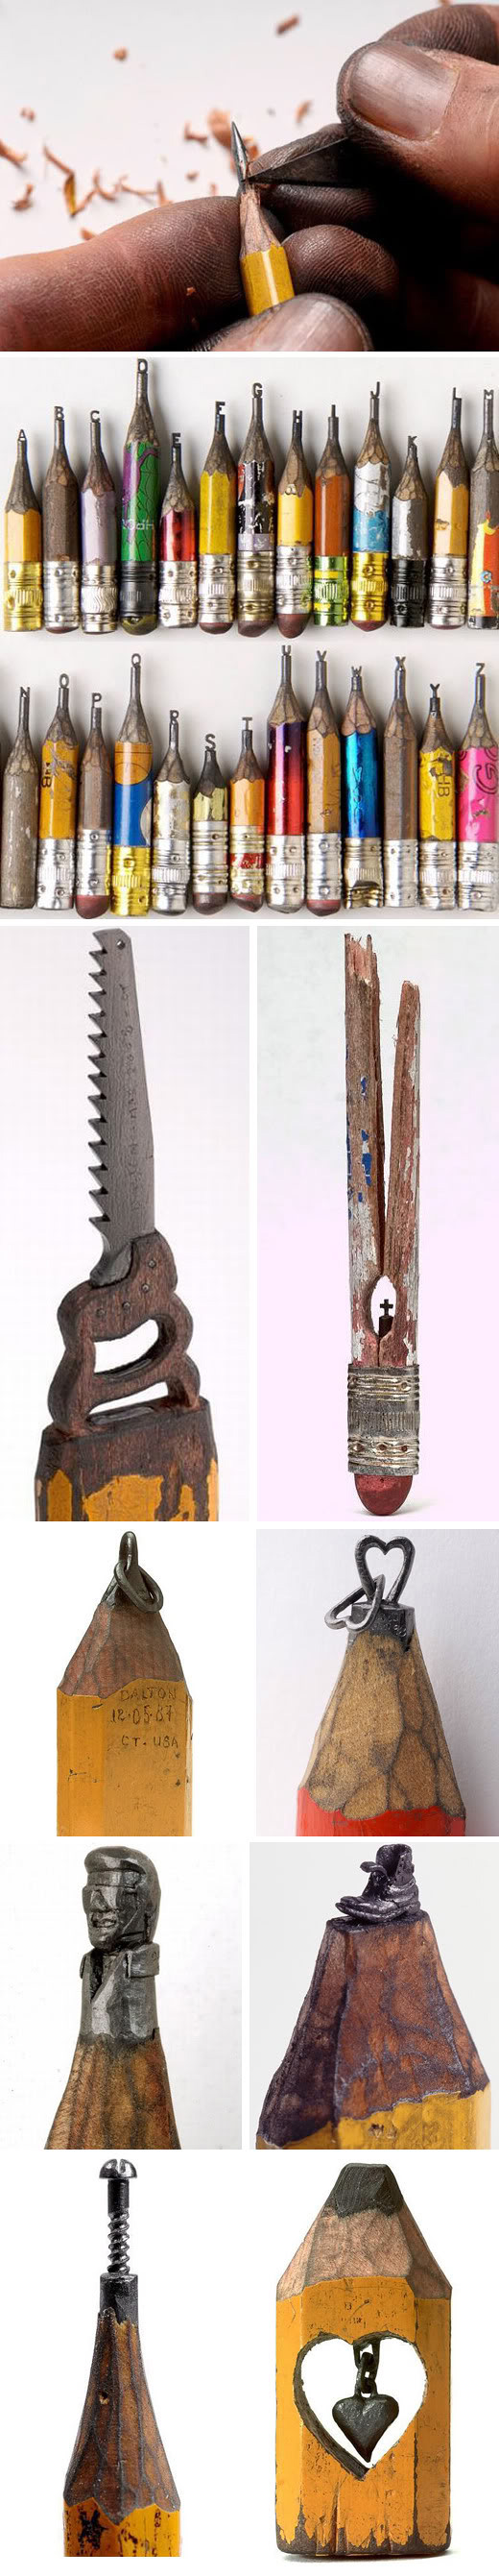 Pencil sculptures by Dalton Ghetti